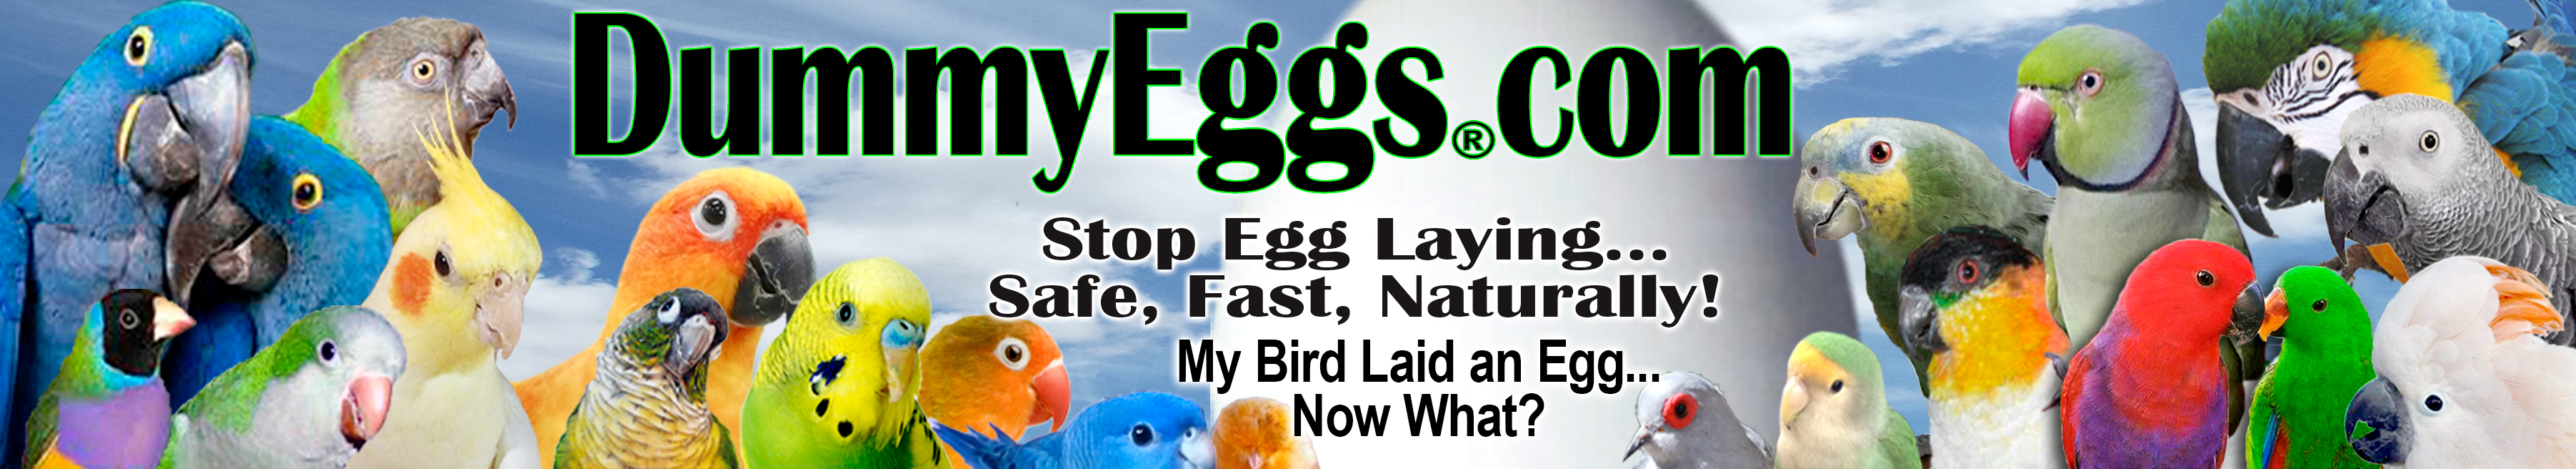 DummyEggs.com sells Dummy Eggs to stop egg laying in pet birds of all sizes. Solid Plastic Non-Toxic Fake Bird Eggs, control laying fast, safe, and naturally.